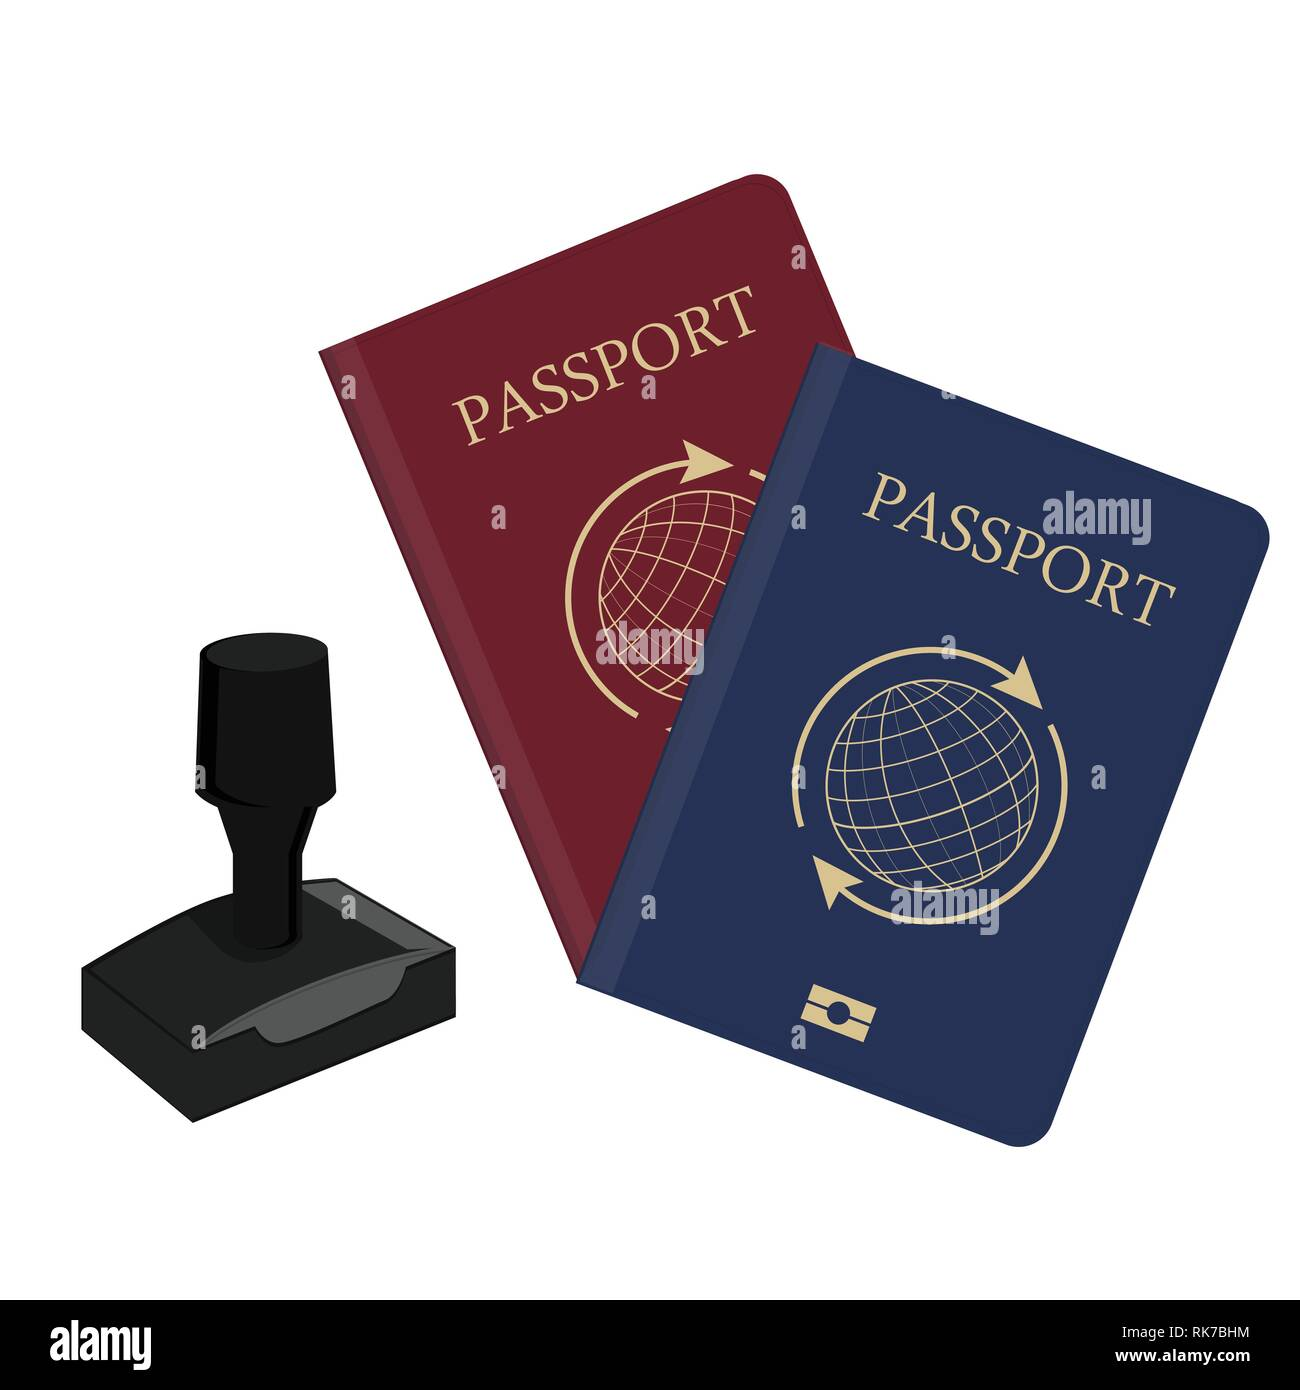 Passport Page Blank Stock Photos & Passport Page Blank Stock Images